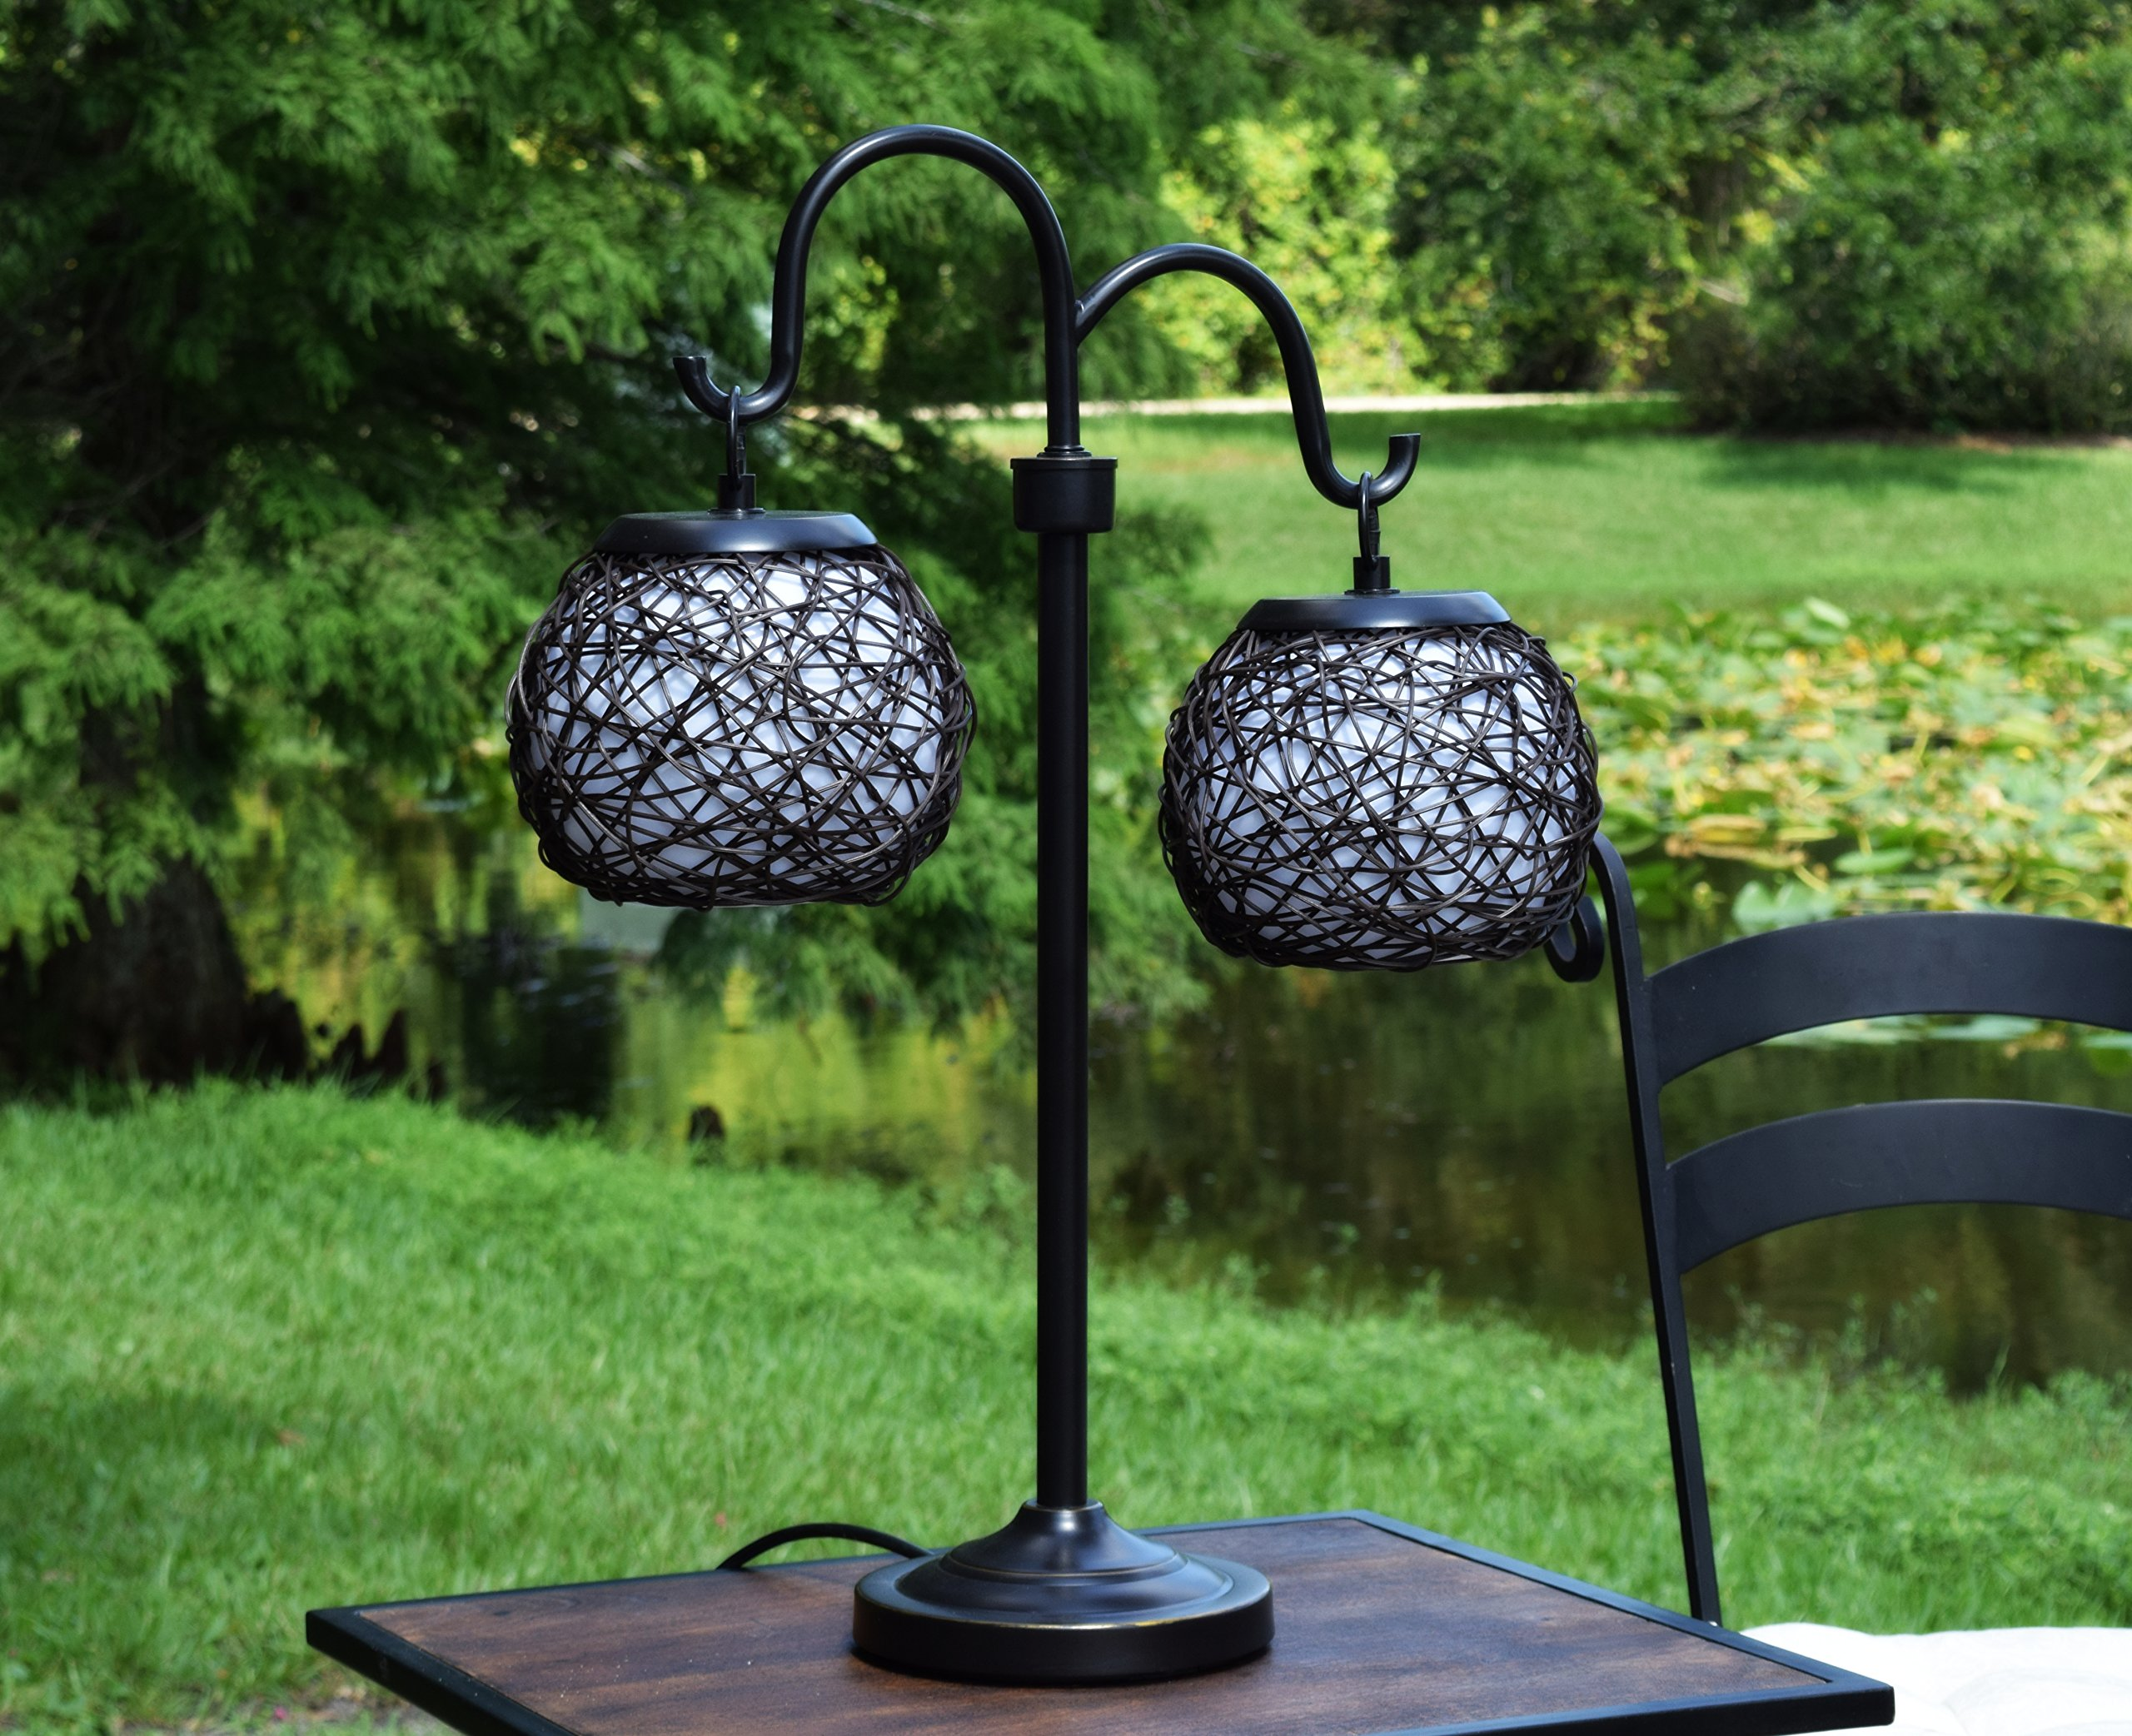 Kenroy Home 32245BRZ Castillo Outdoor Table Lamp, Bronze Finish by Kenroy Home (Image #3)